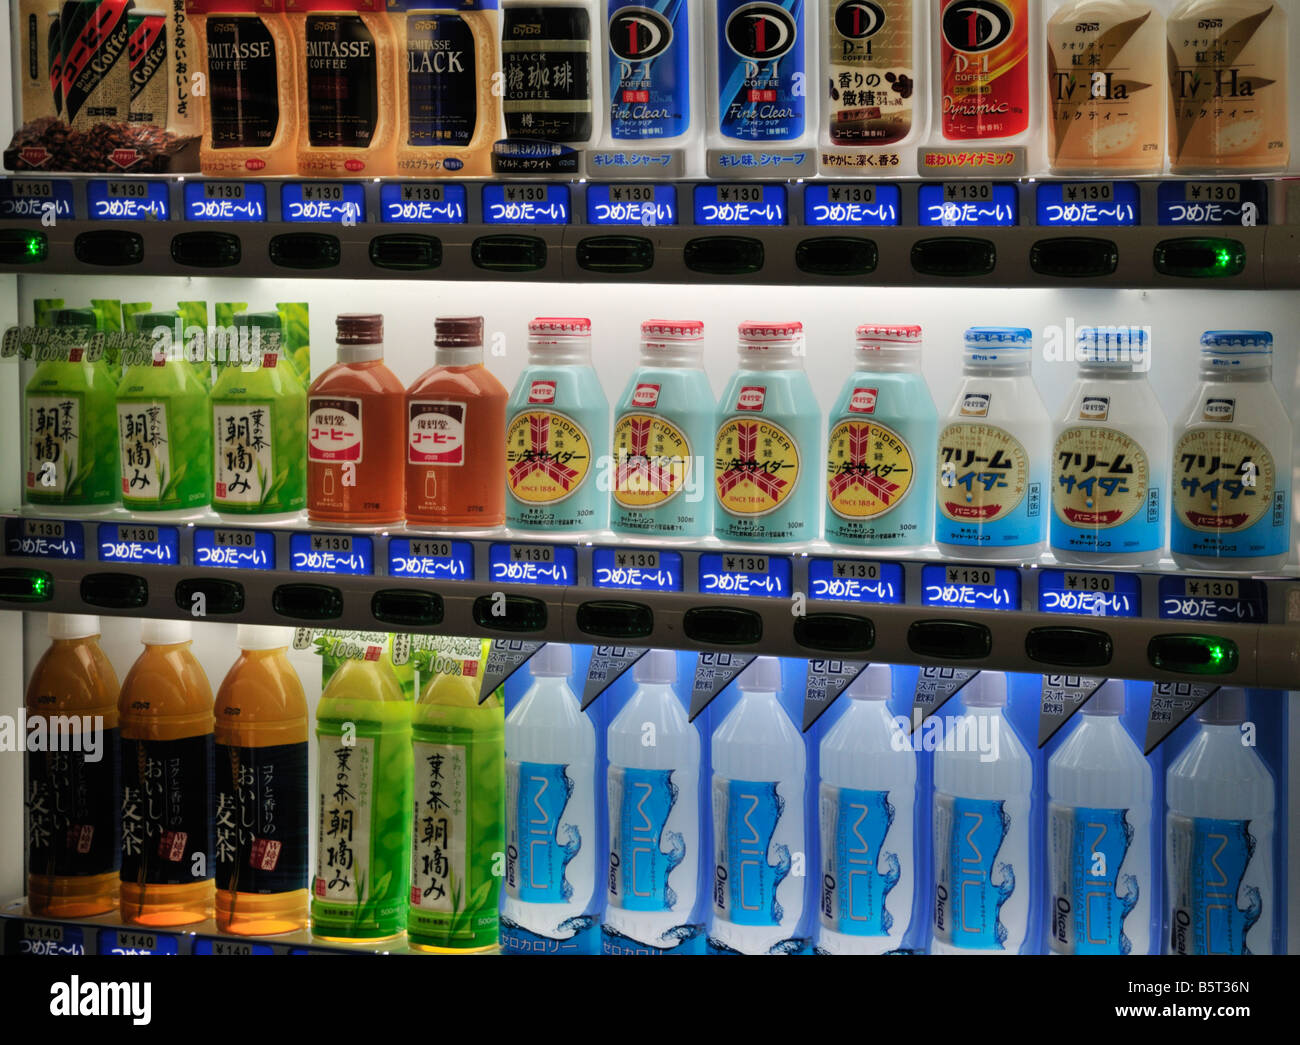 Japanese drinks vending machine showing green tea, coffee and alcoholic drinks Stock Photo